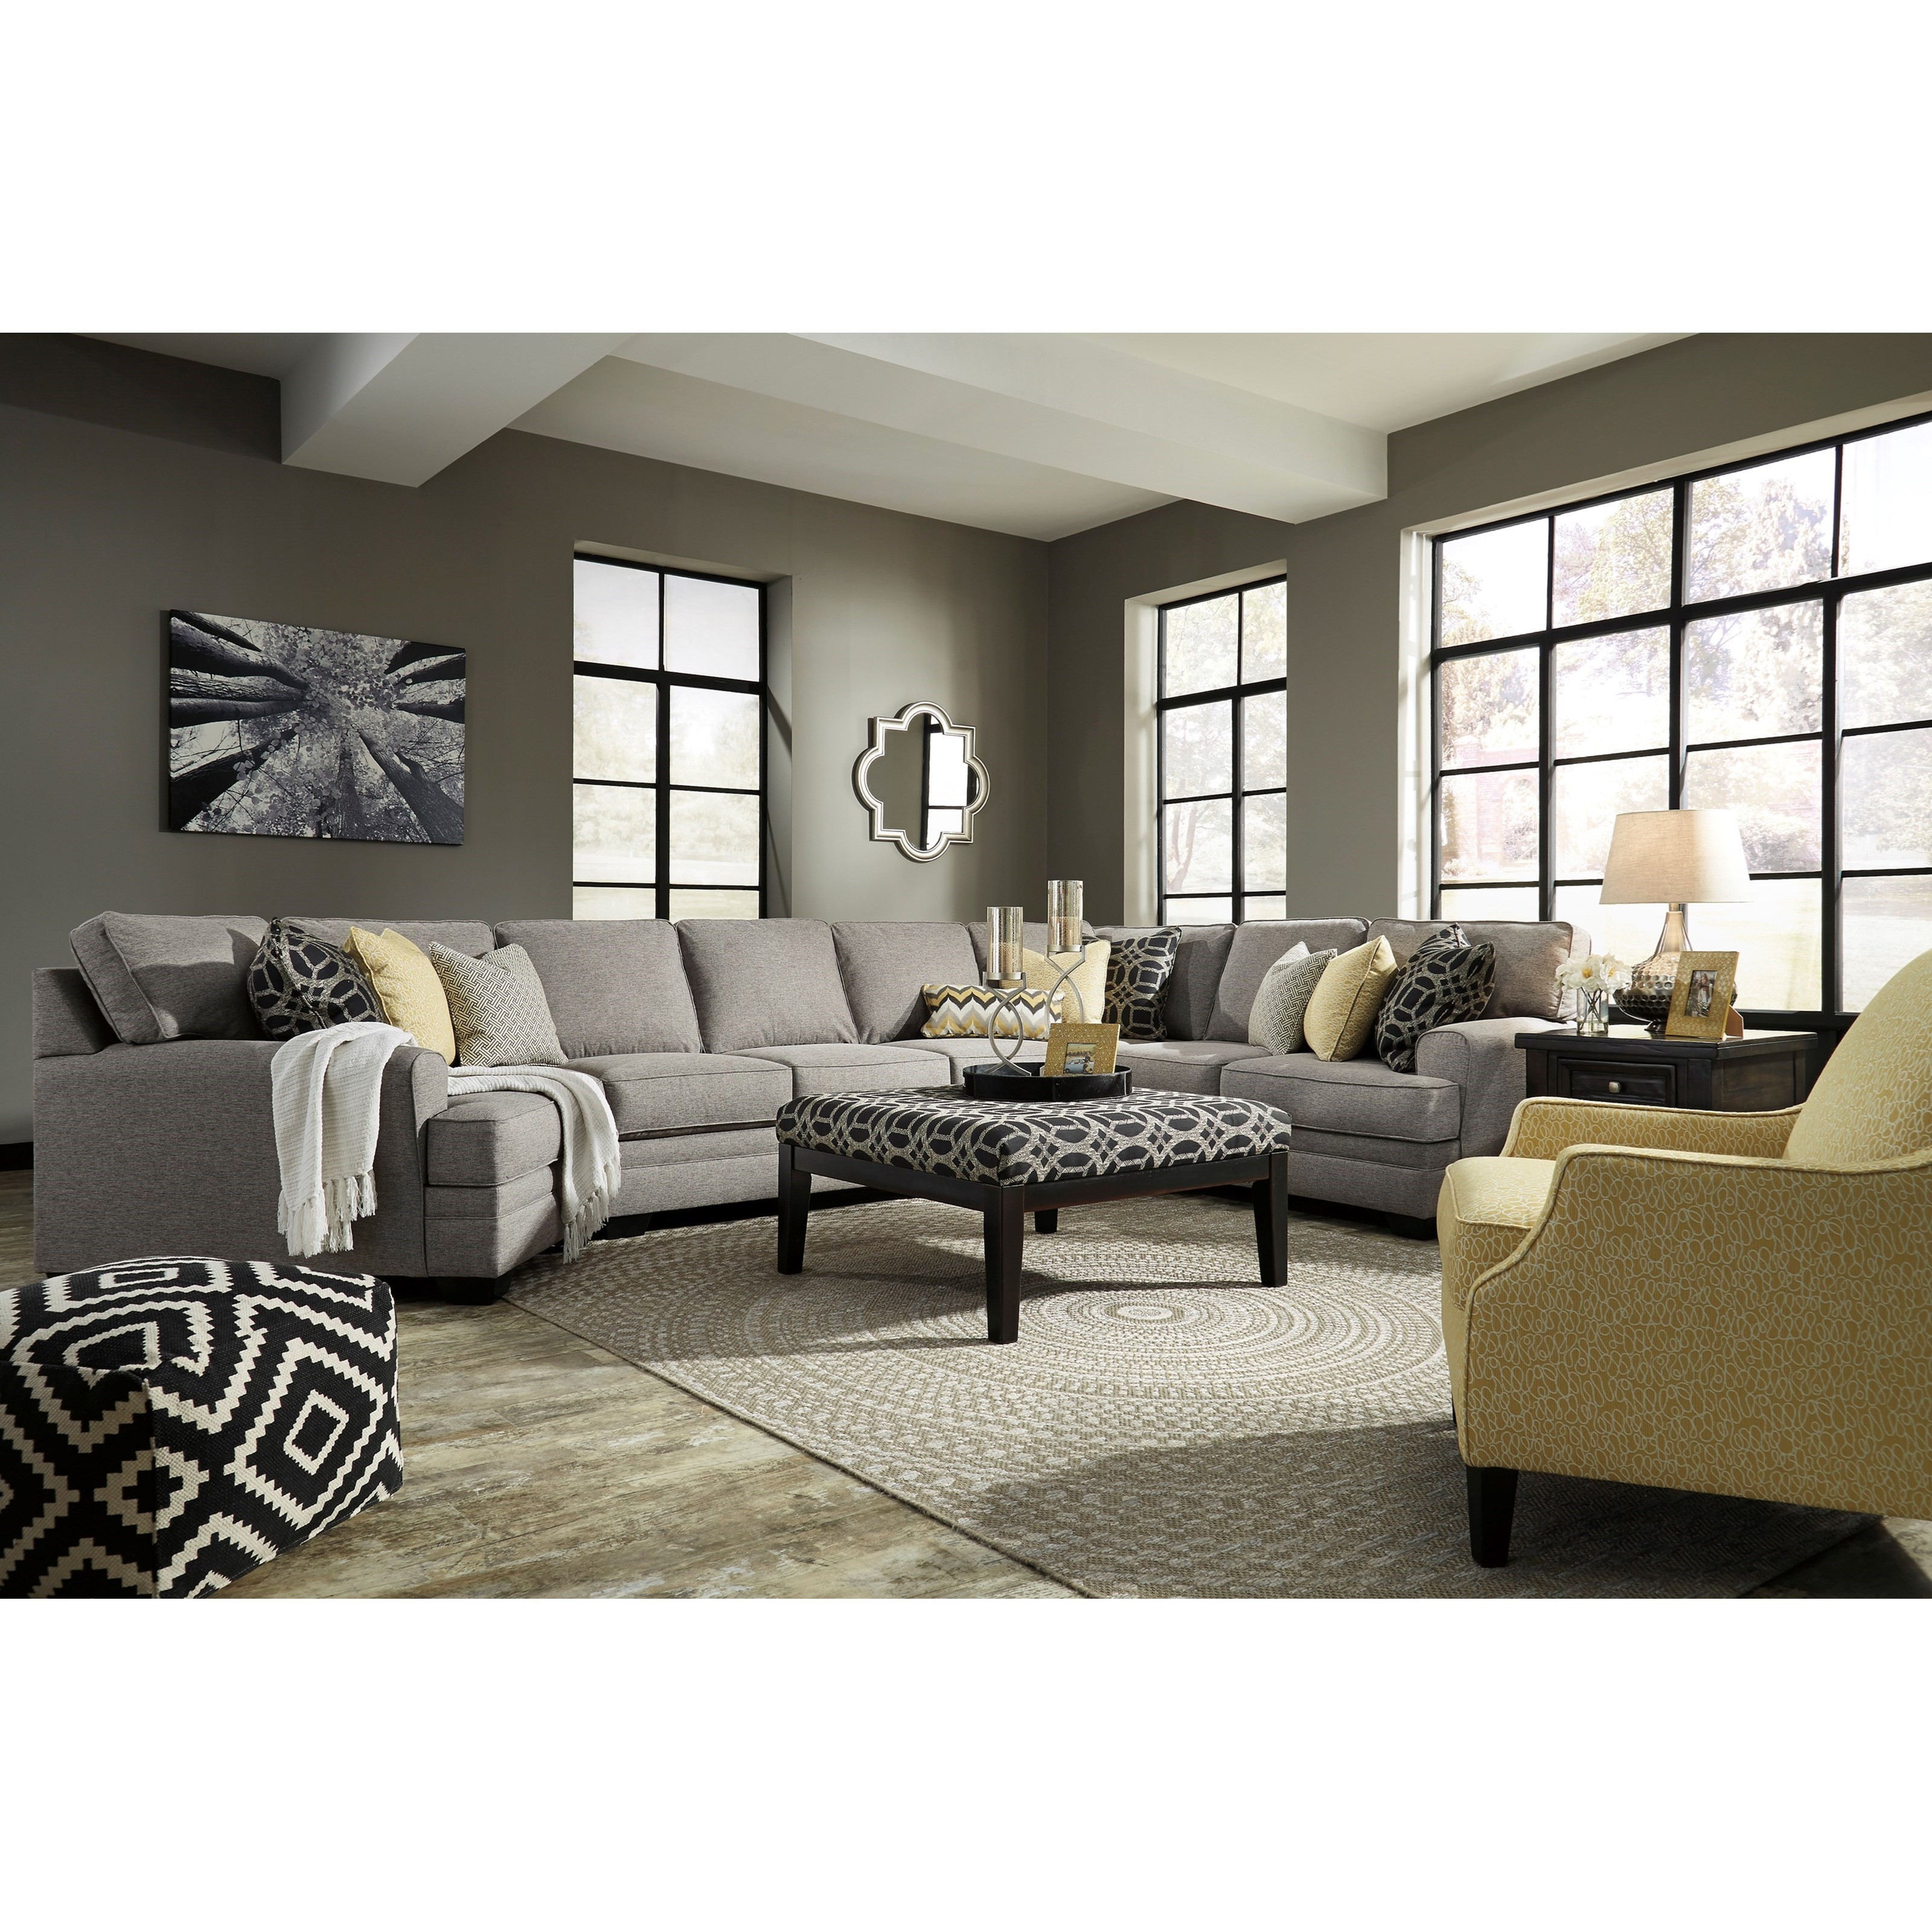 Benchcraft Cresson Stationary Living Room Group - Item Number: 54907 Living Room Group 22